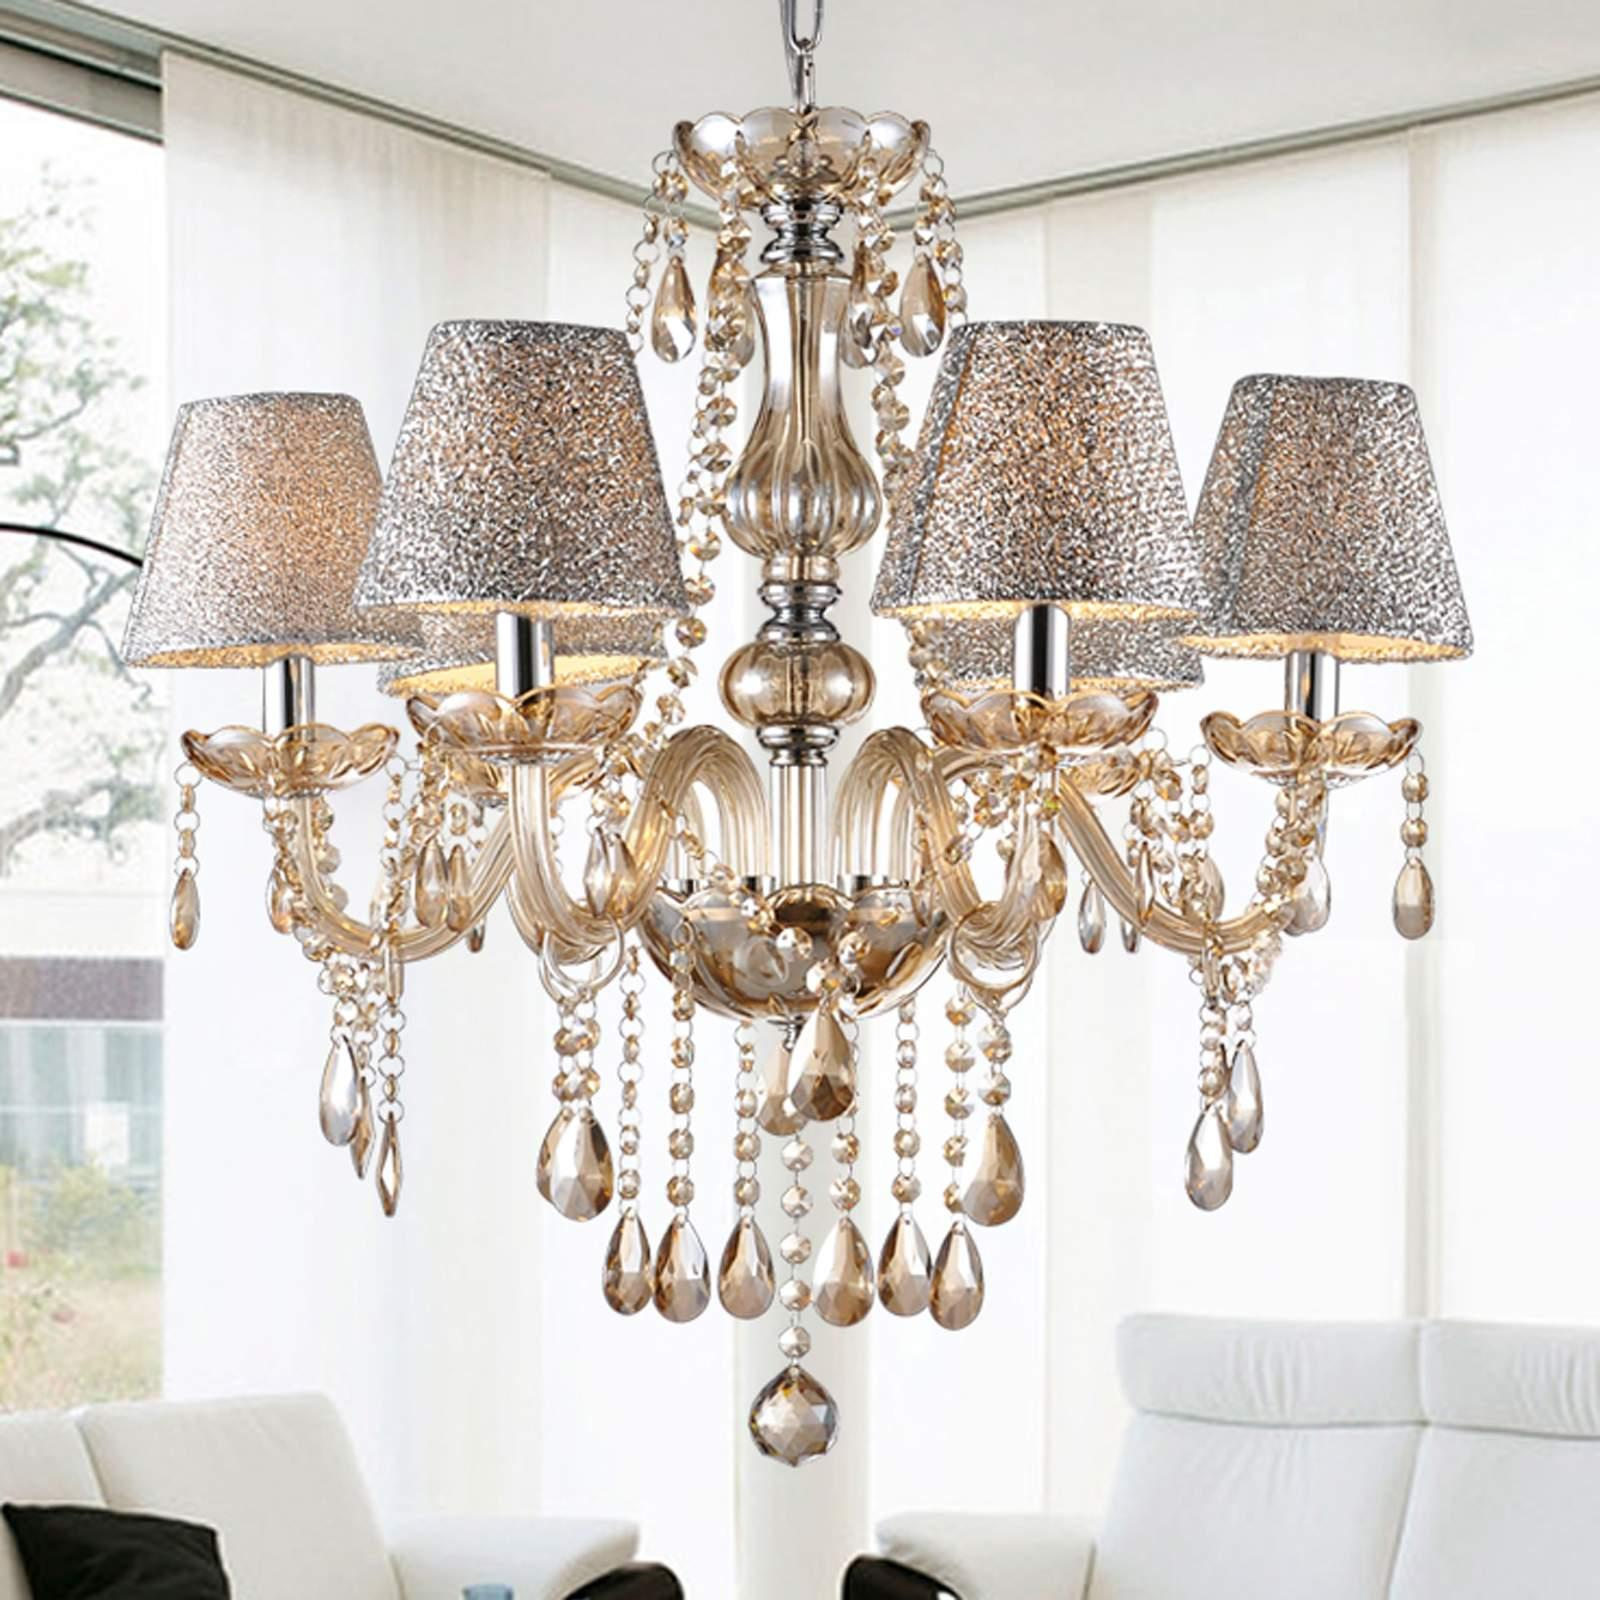 6 Lights Crystal Chandelier Ceiling Chain Lamp For Living Room&Hall WCYE by